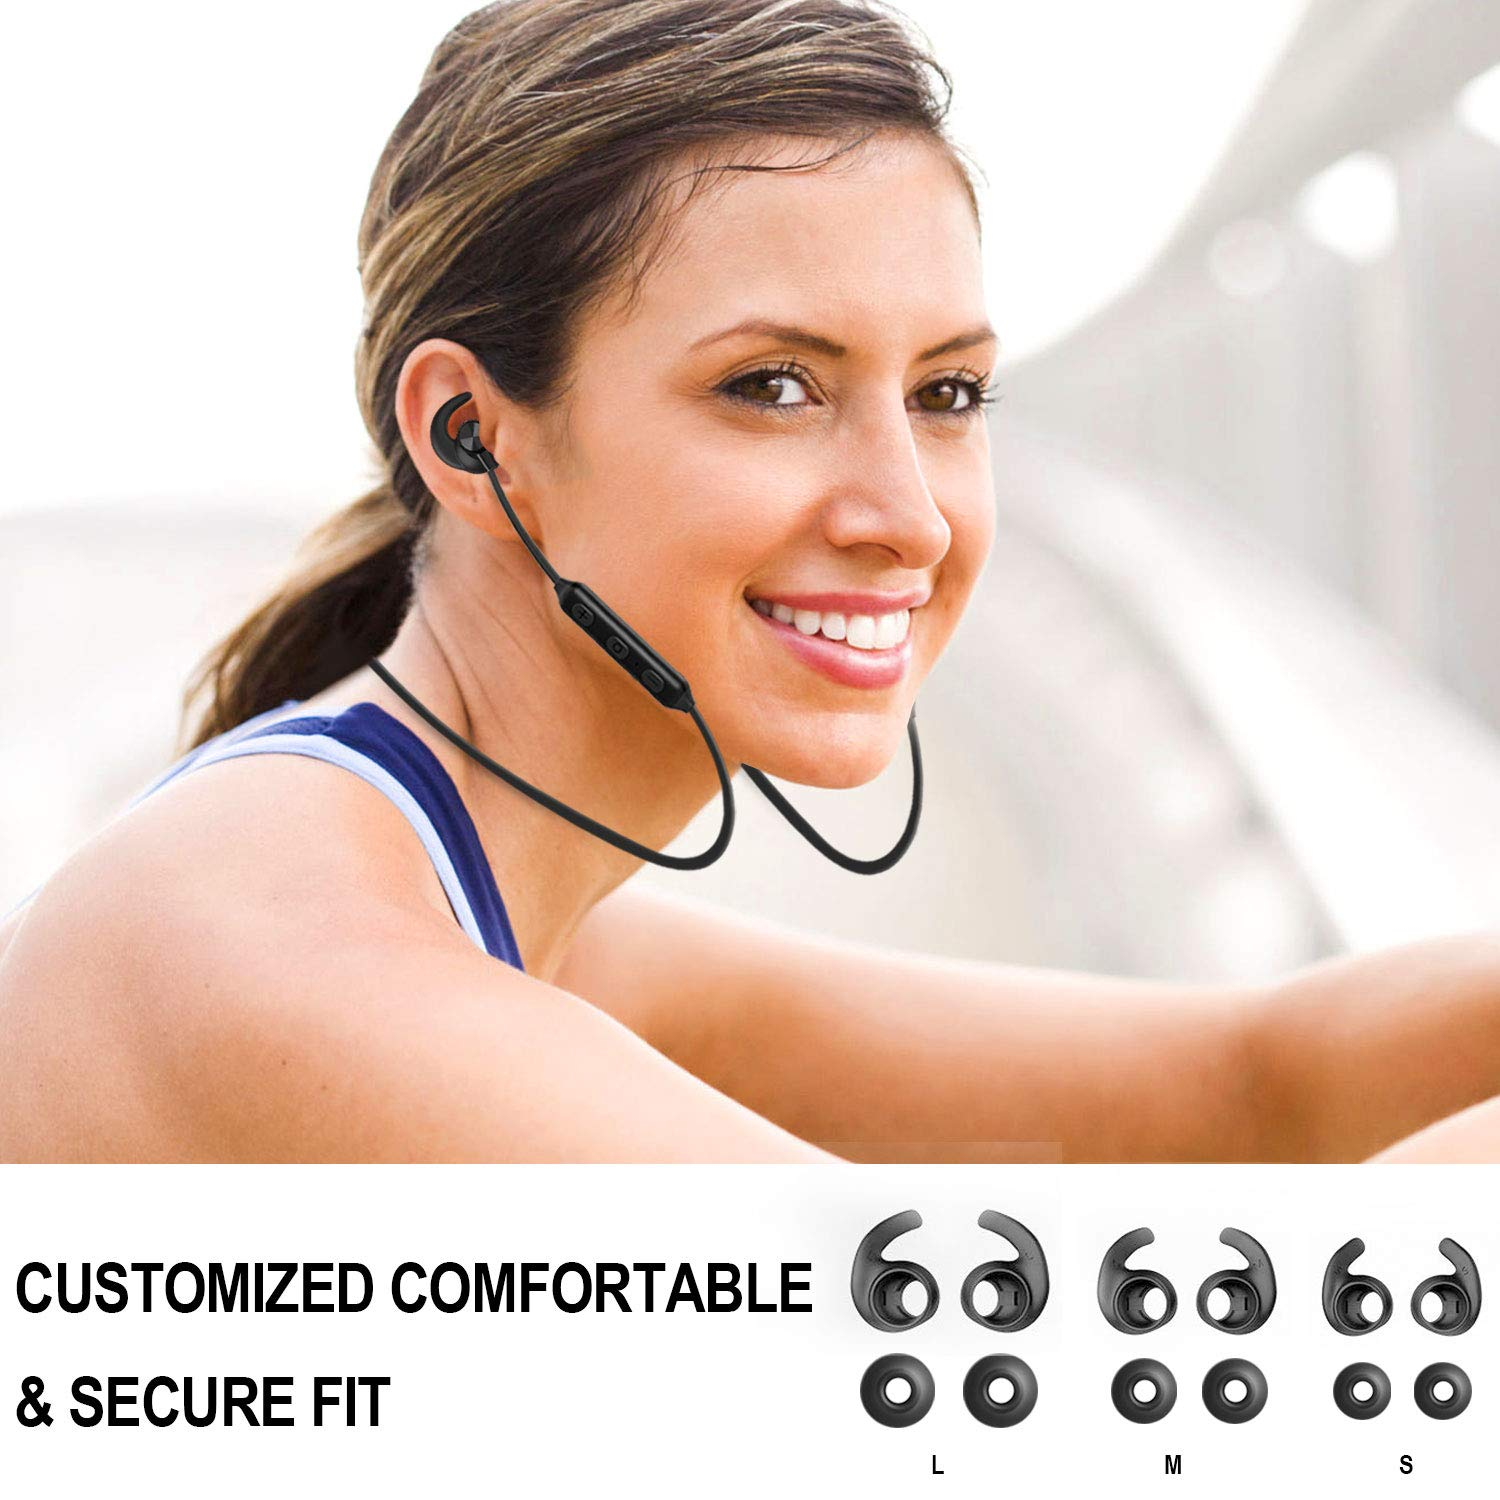 Bluetooth Headphones, Akface Wireless Earbuds Sweatproof Sport Earphones w/Mic Bluetooth 5.0 Fast Pairing HD Stereo Noise Canceling Magnetic in-Ear Headsets for Gym Running Workout Men Women Students by akface (Image #4)